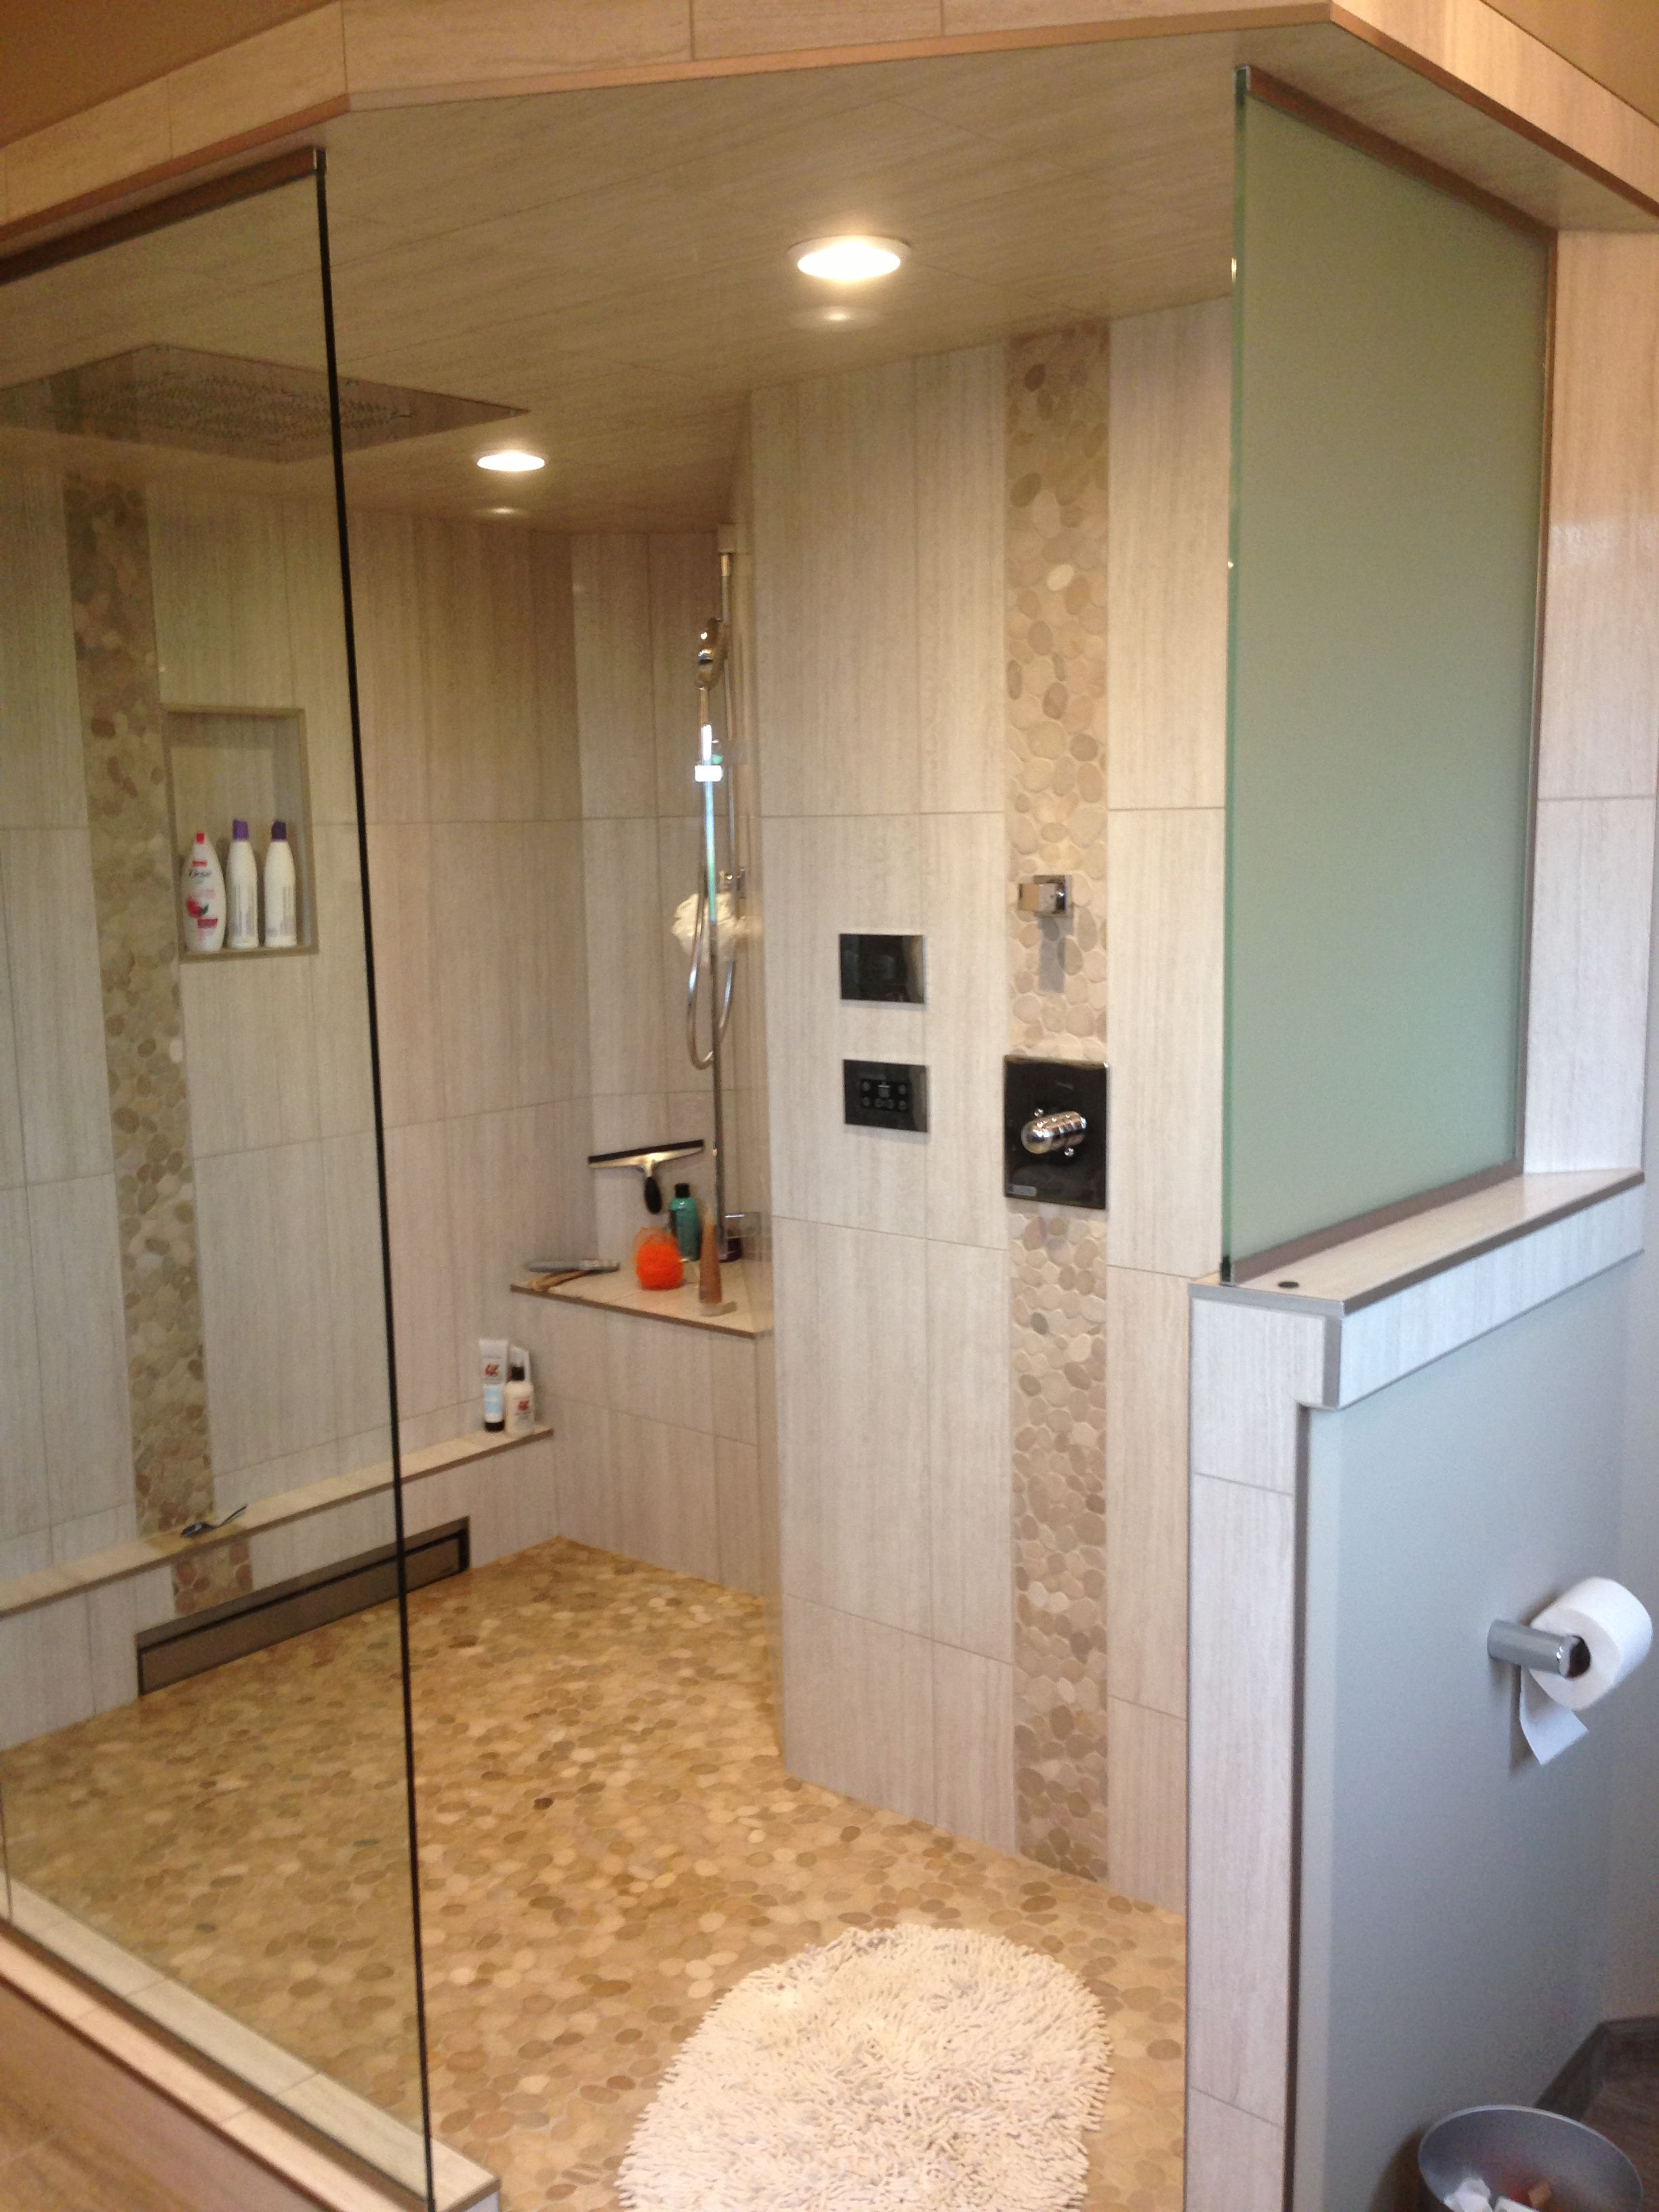 Frameless Shower Door And Panel Installed With Clips Instead Of Channel Clear Glass And Polished Chrome Hardwa Shower Room Frameless Shower Doors Shower Doors